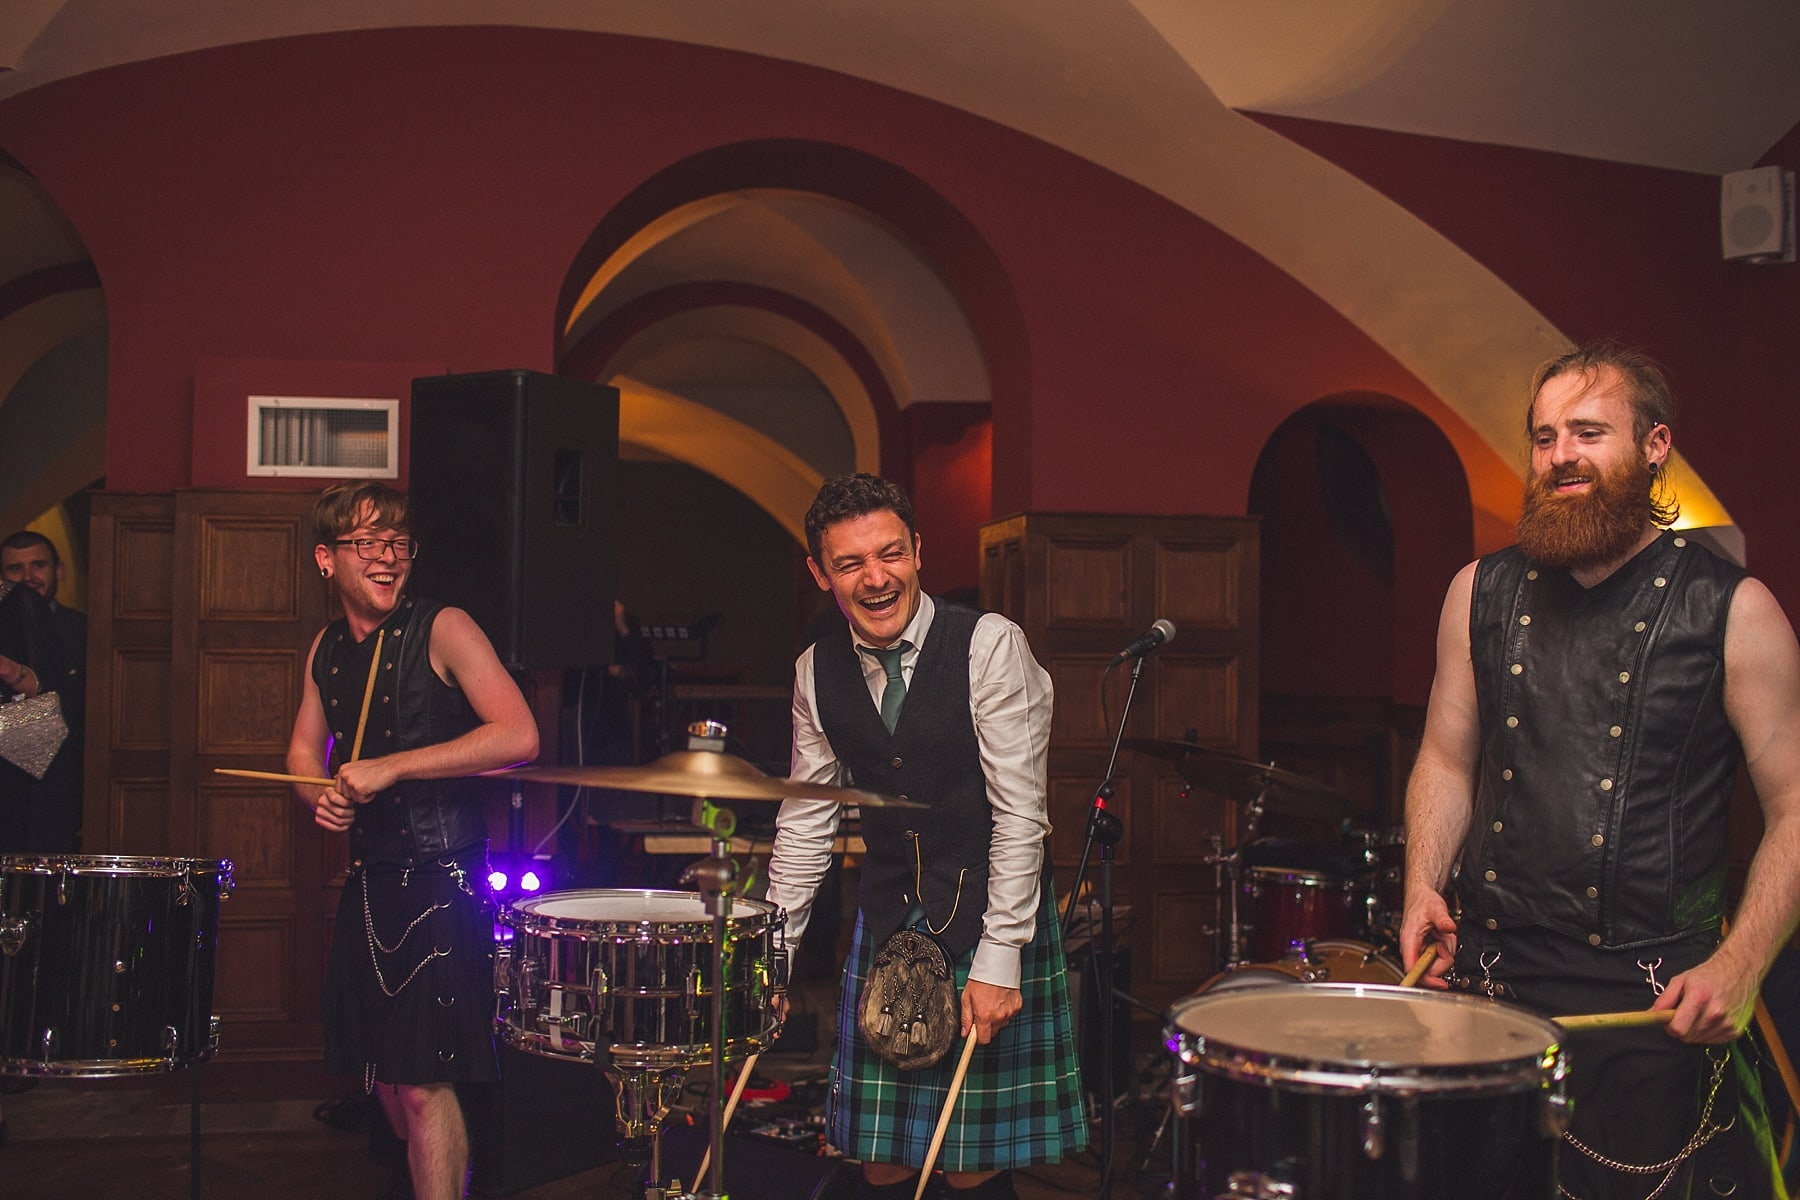 Markree Castle wedding,midnight drummers,destination wedding photography,dancing,fun,